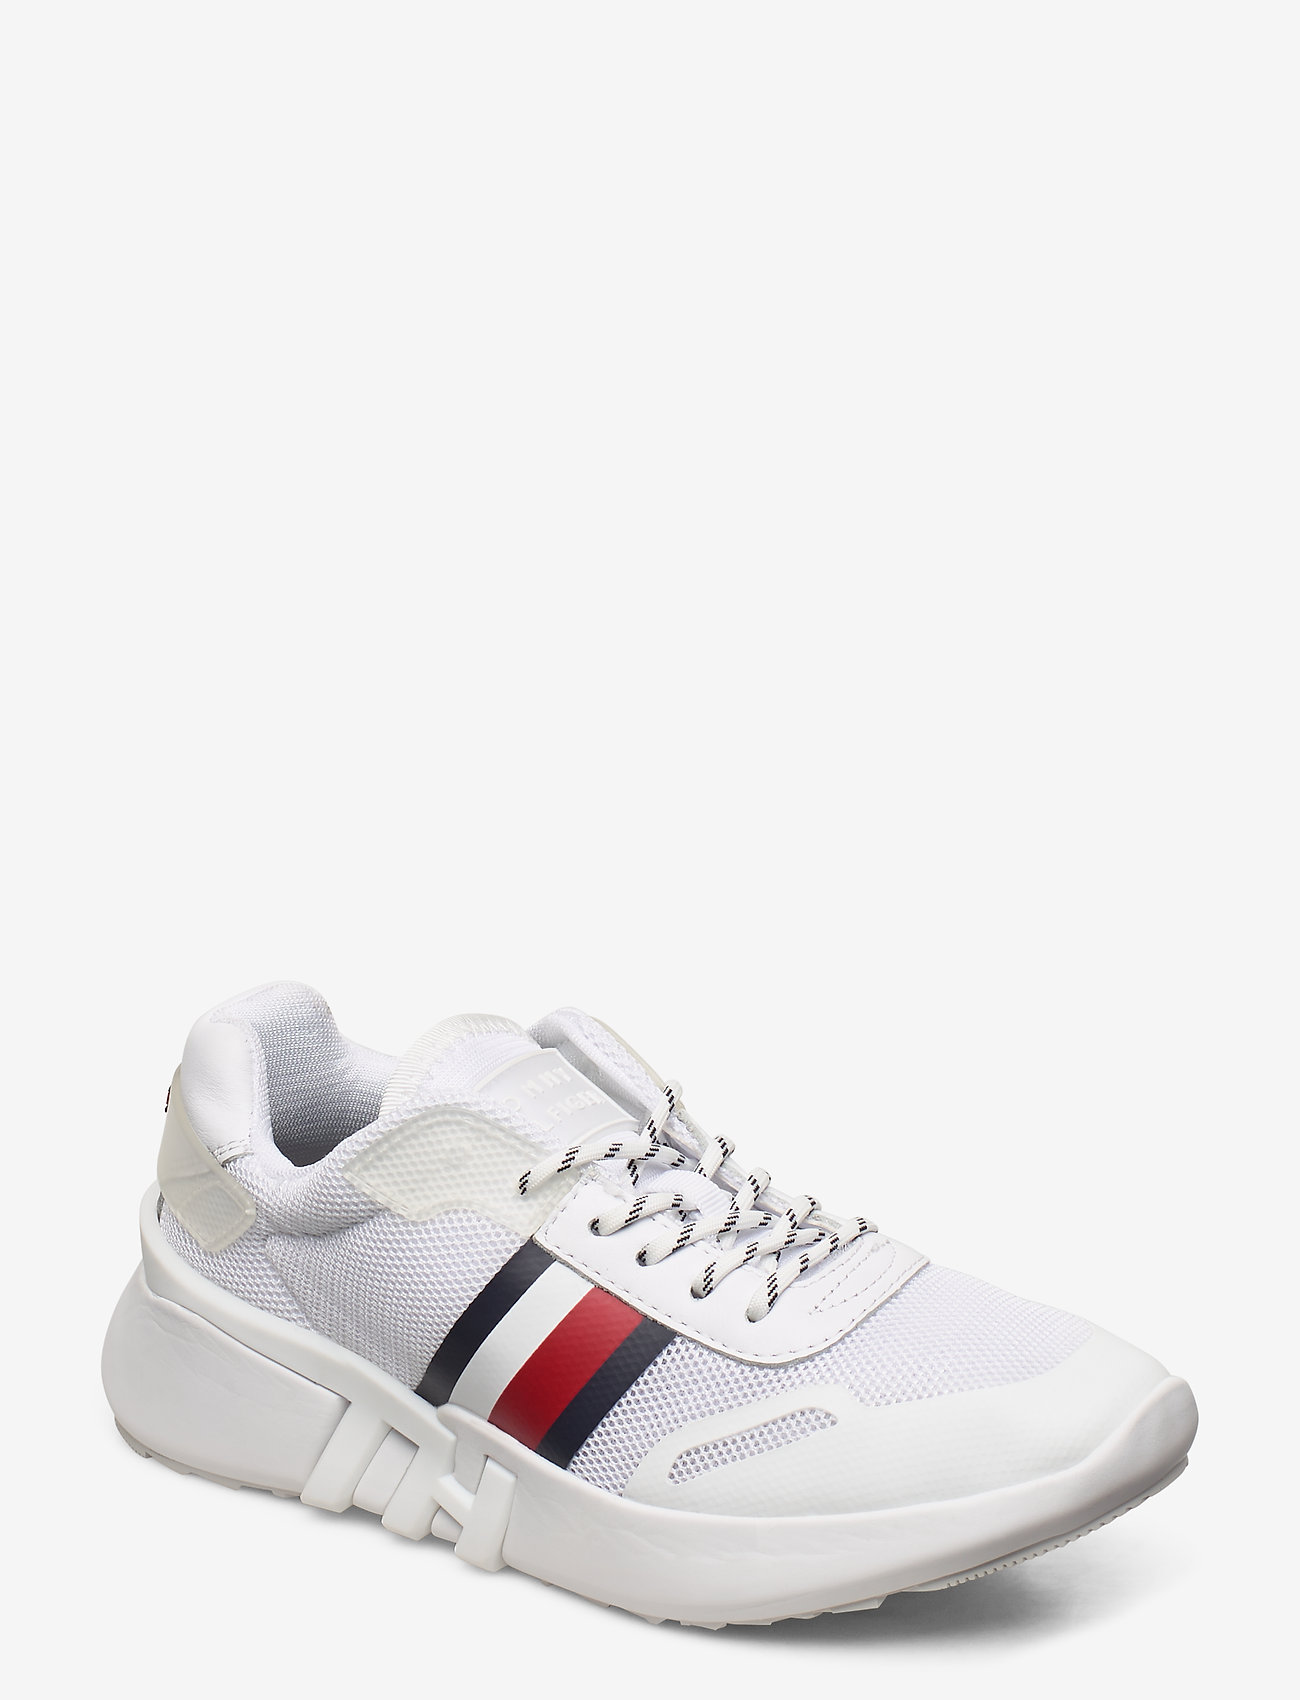 Tommy Hilfiger - TOMMY SPORTY BRANDED - low top sneakers - white - 0